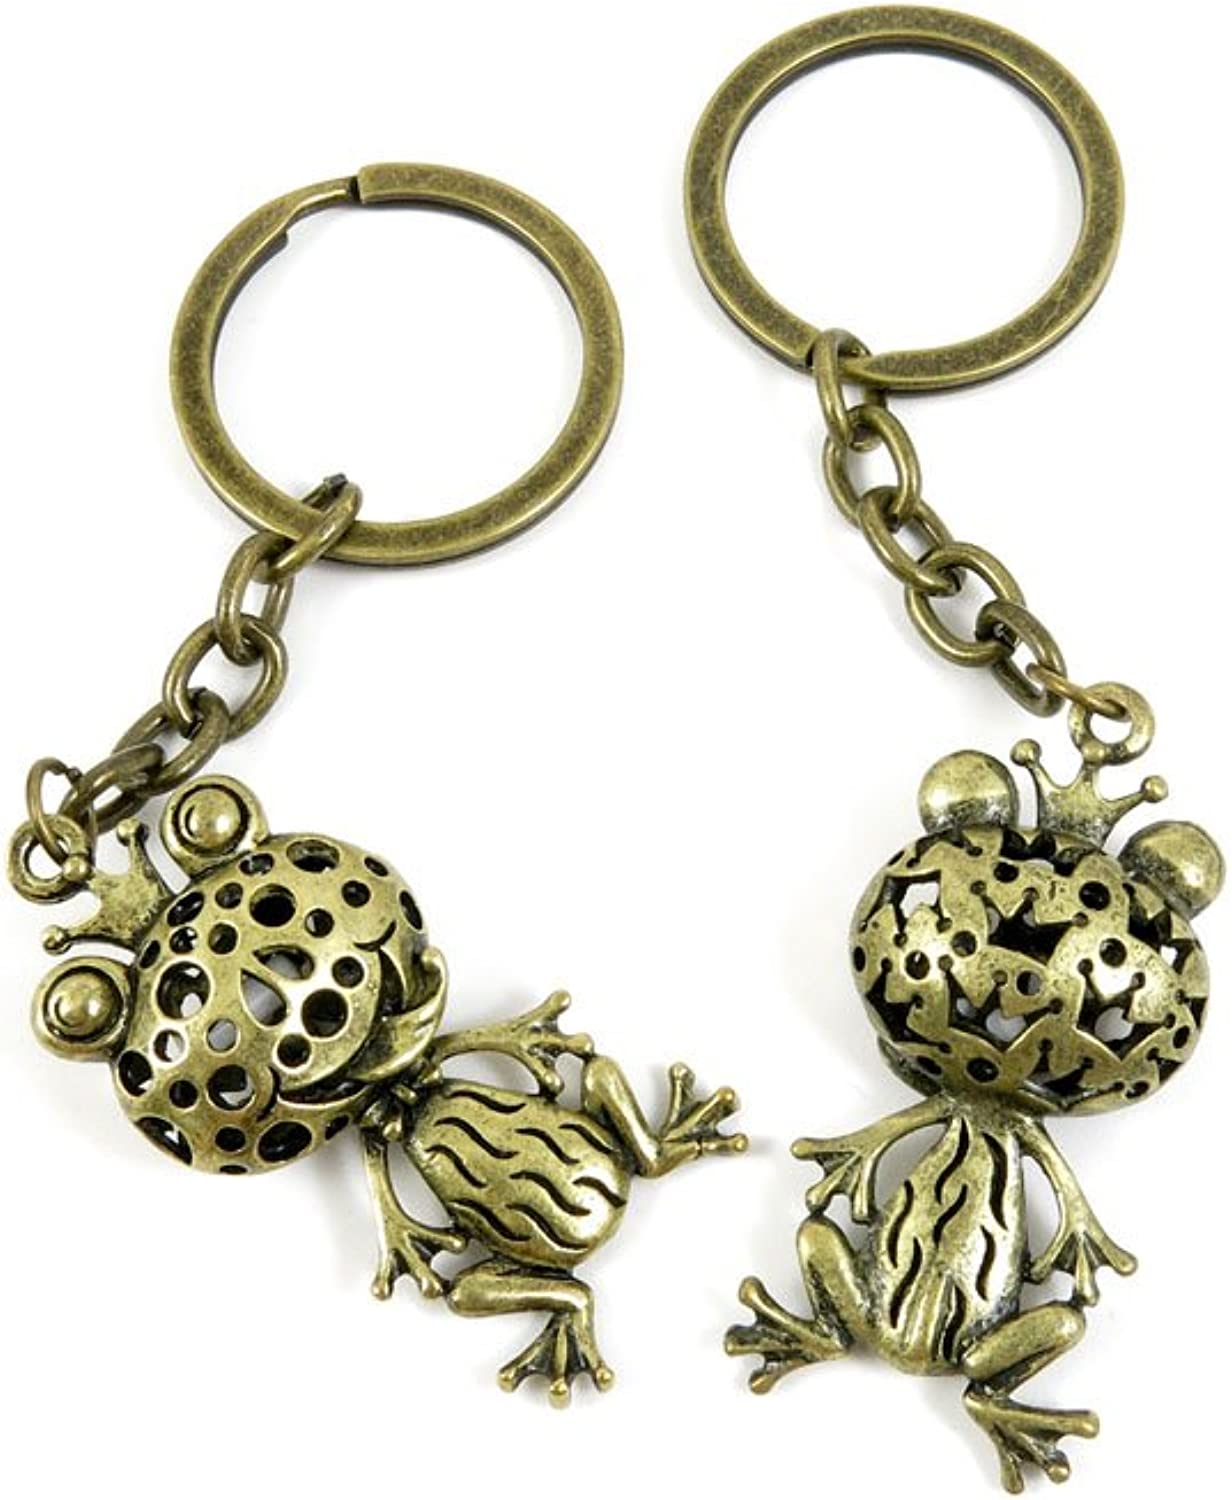 40 PCS Keyring Car Door Key Ring Tag Chain Keychain Wholesale Suppliers Charms Handmade W9GB9 Hollow Frog Prince